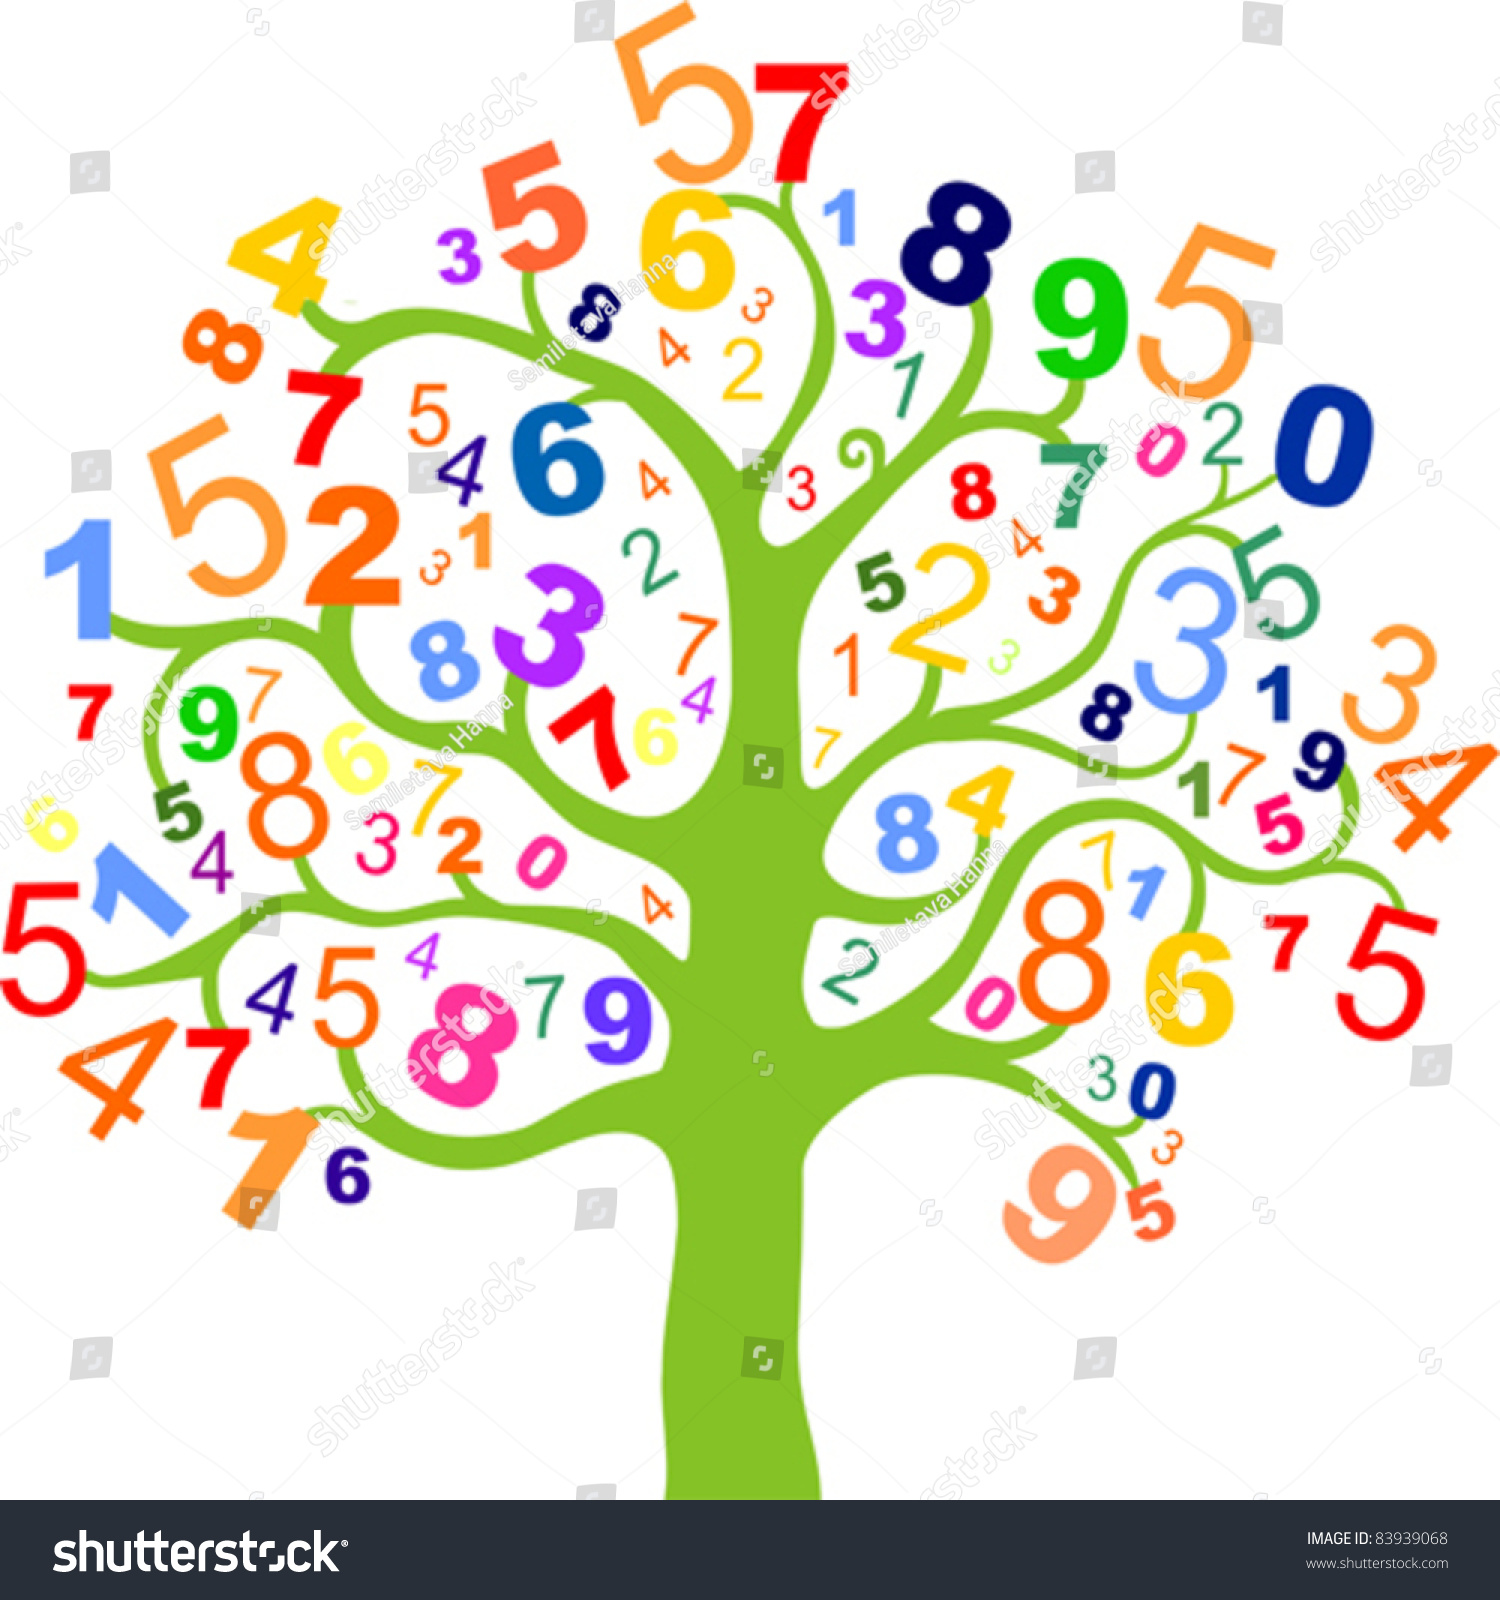 Abstract Colorful Tree Numbers Isolated On Stock Vector